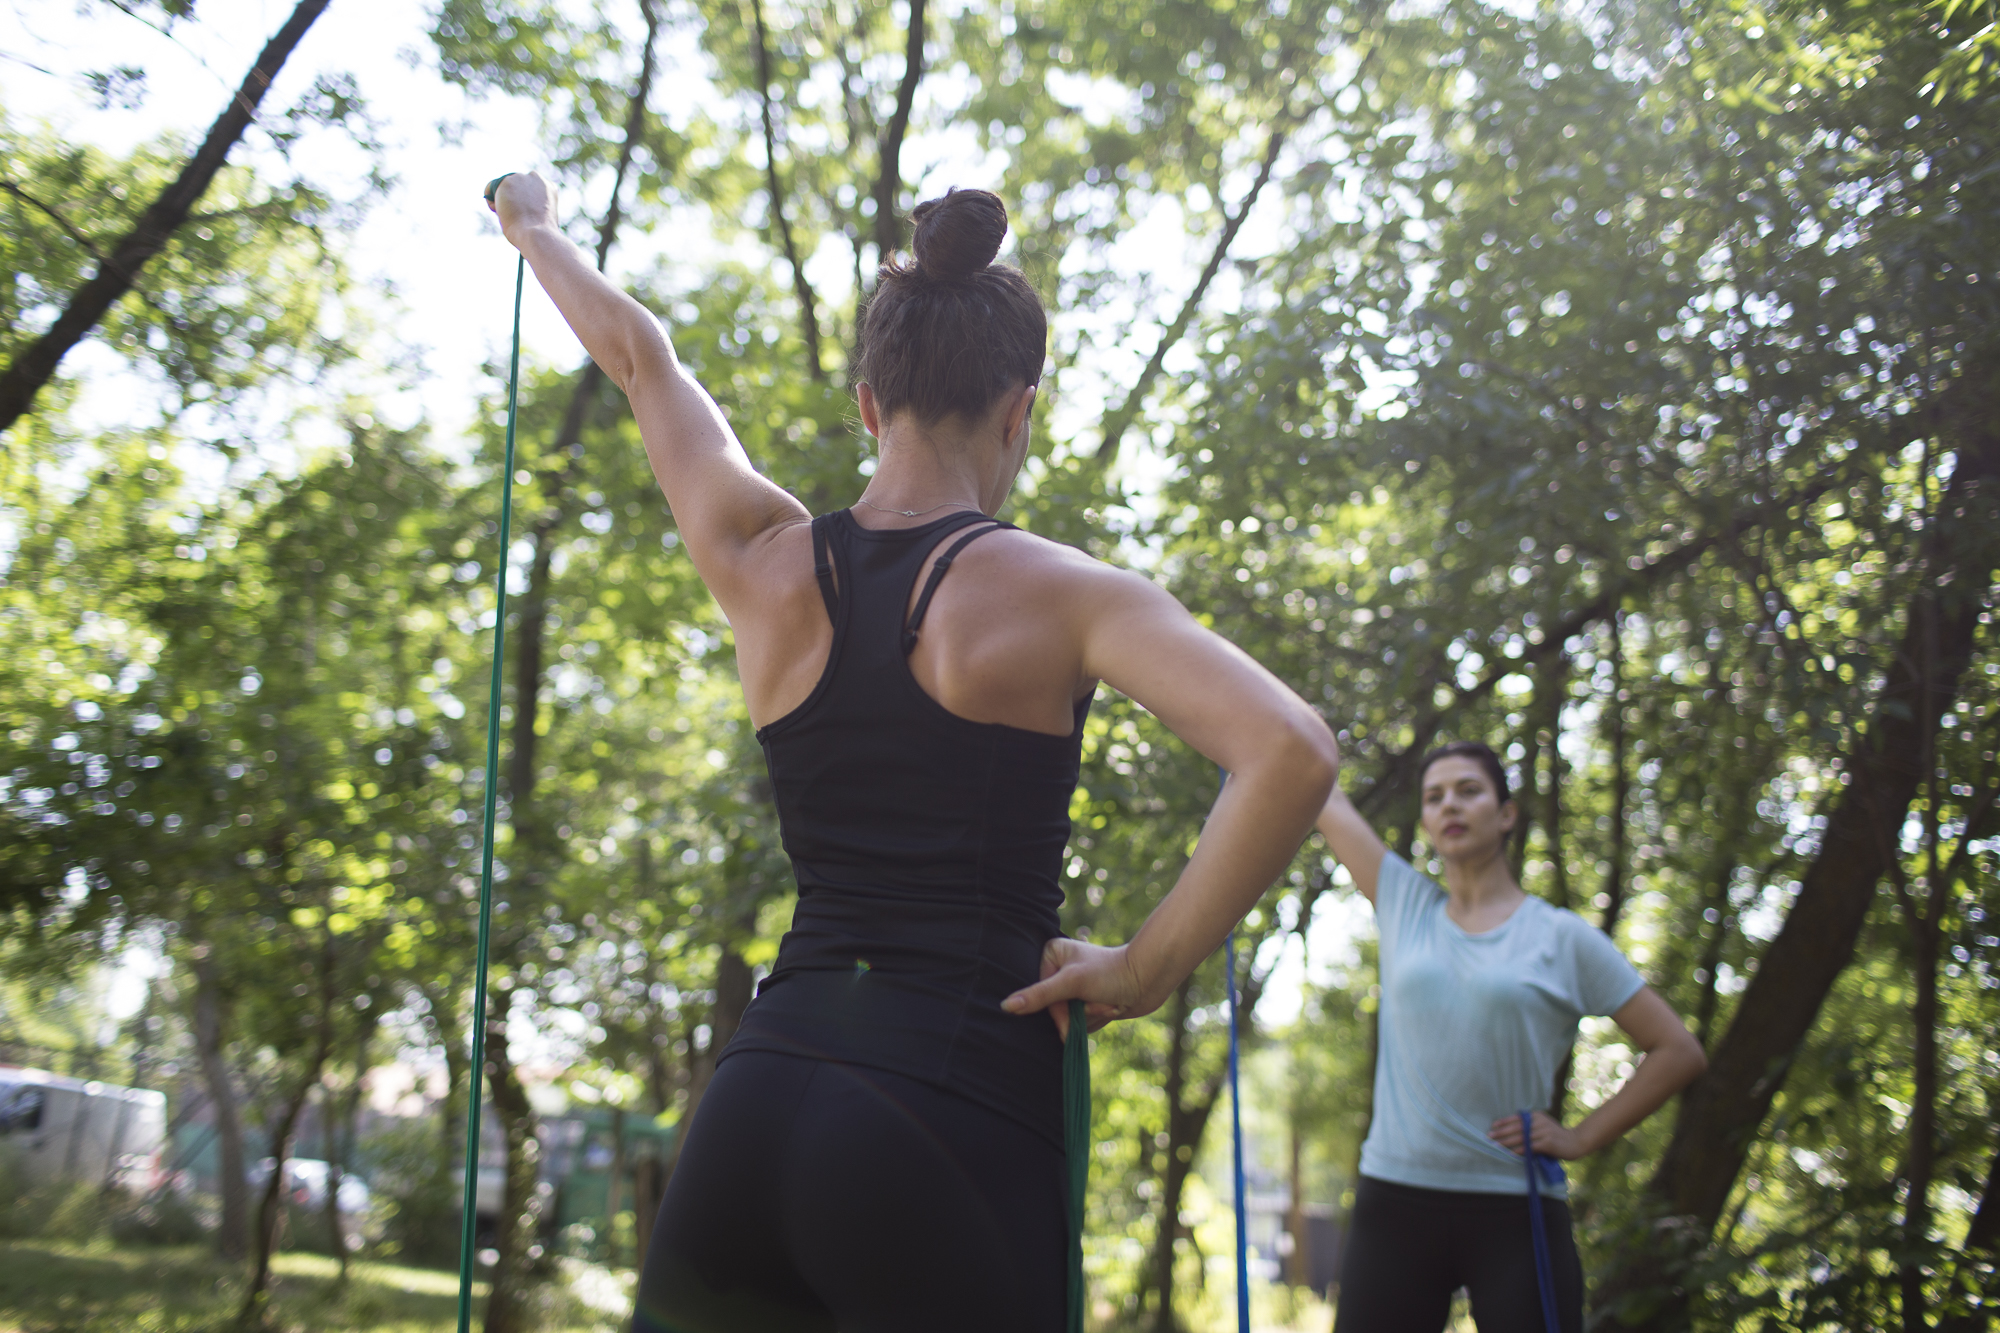 Kaltrina, a personal trainer, and Agnesa excersice in the park.